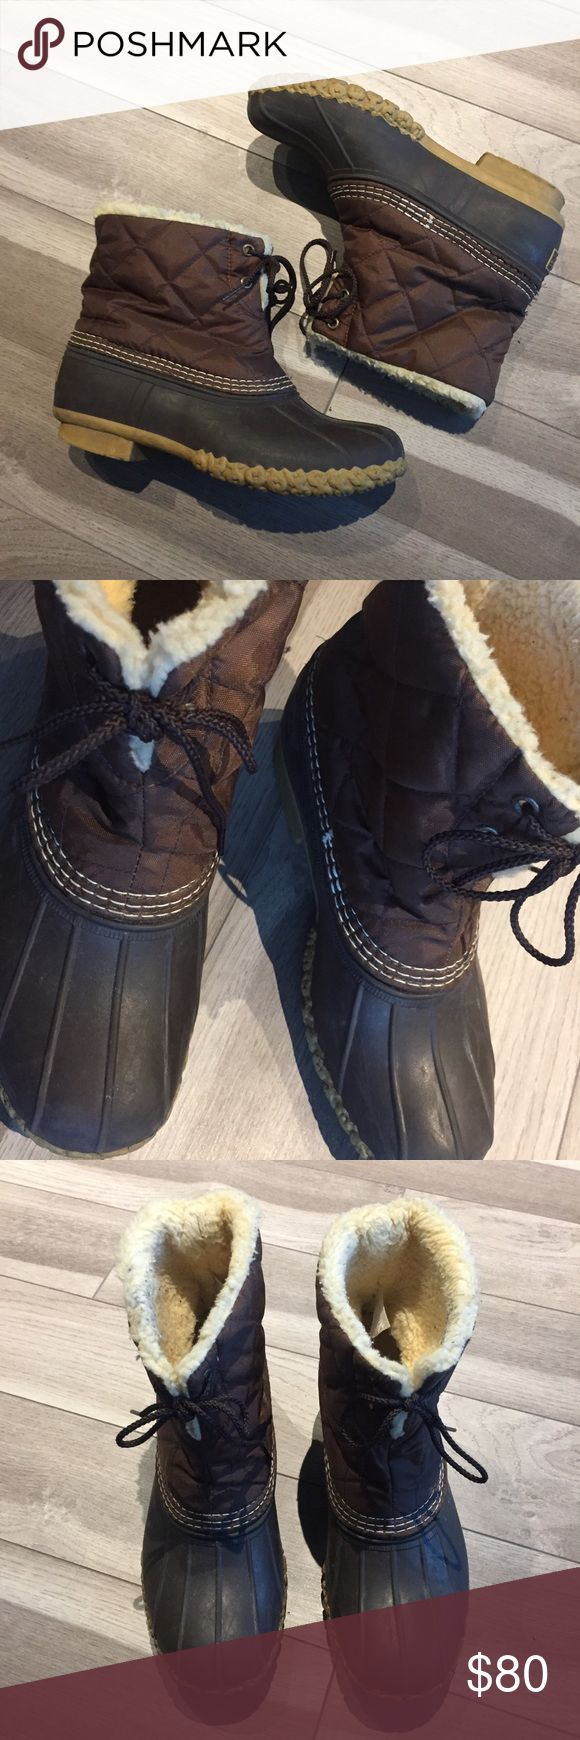 """BROWN WINTER WATERPROOF INSULATED LL BEAN BOOTS Women's L.L. Bean """"Duck"""" Boots. INSULATED with fur warm lining (minor pilling from wear). Winter waterproof on exterior. Sold out design! Lace up front. Label on inside is worn, but boots fit as a size 8! L.L. Bean Shoes Winter & Rain Boots"""